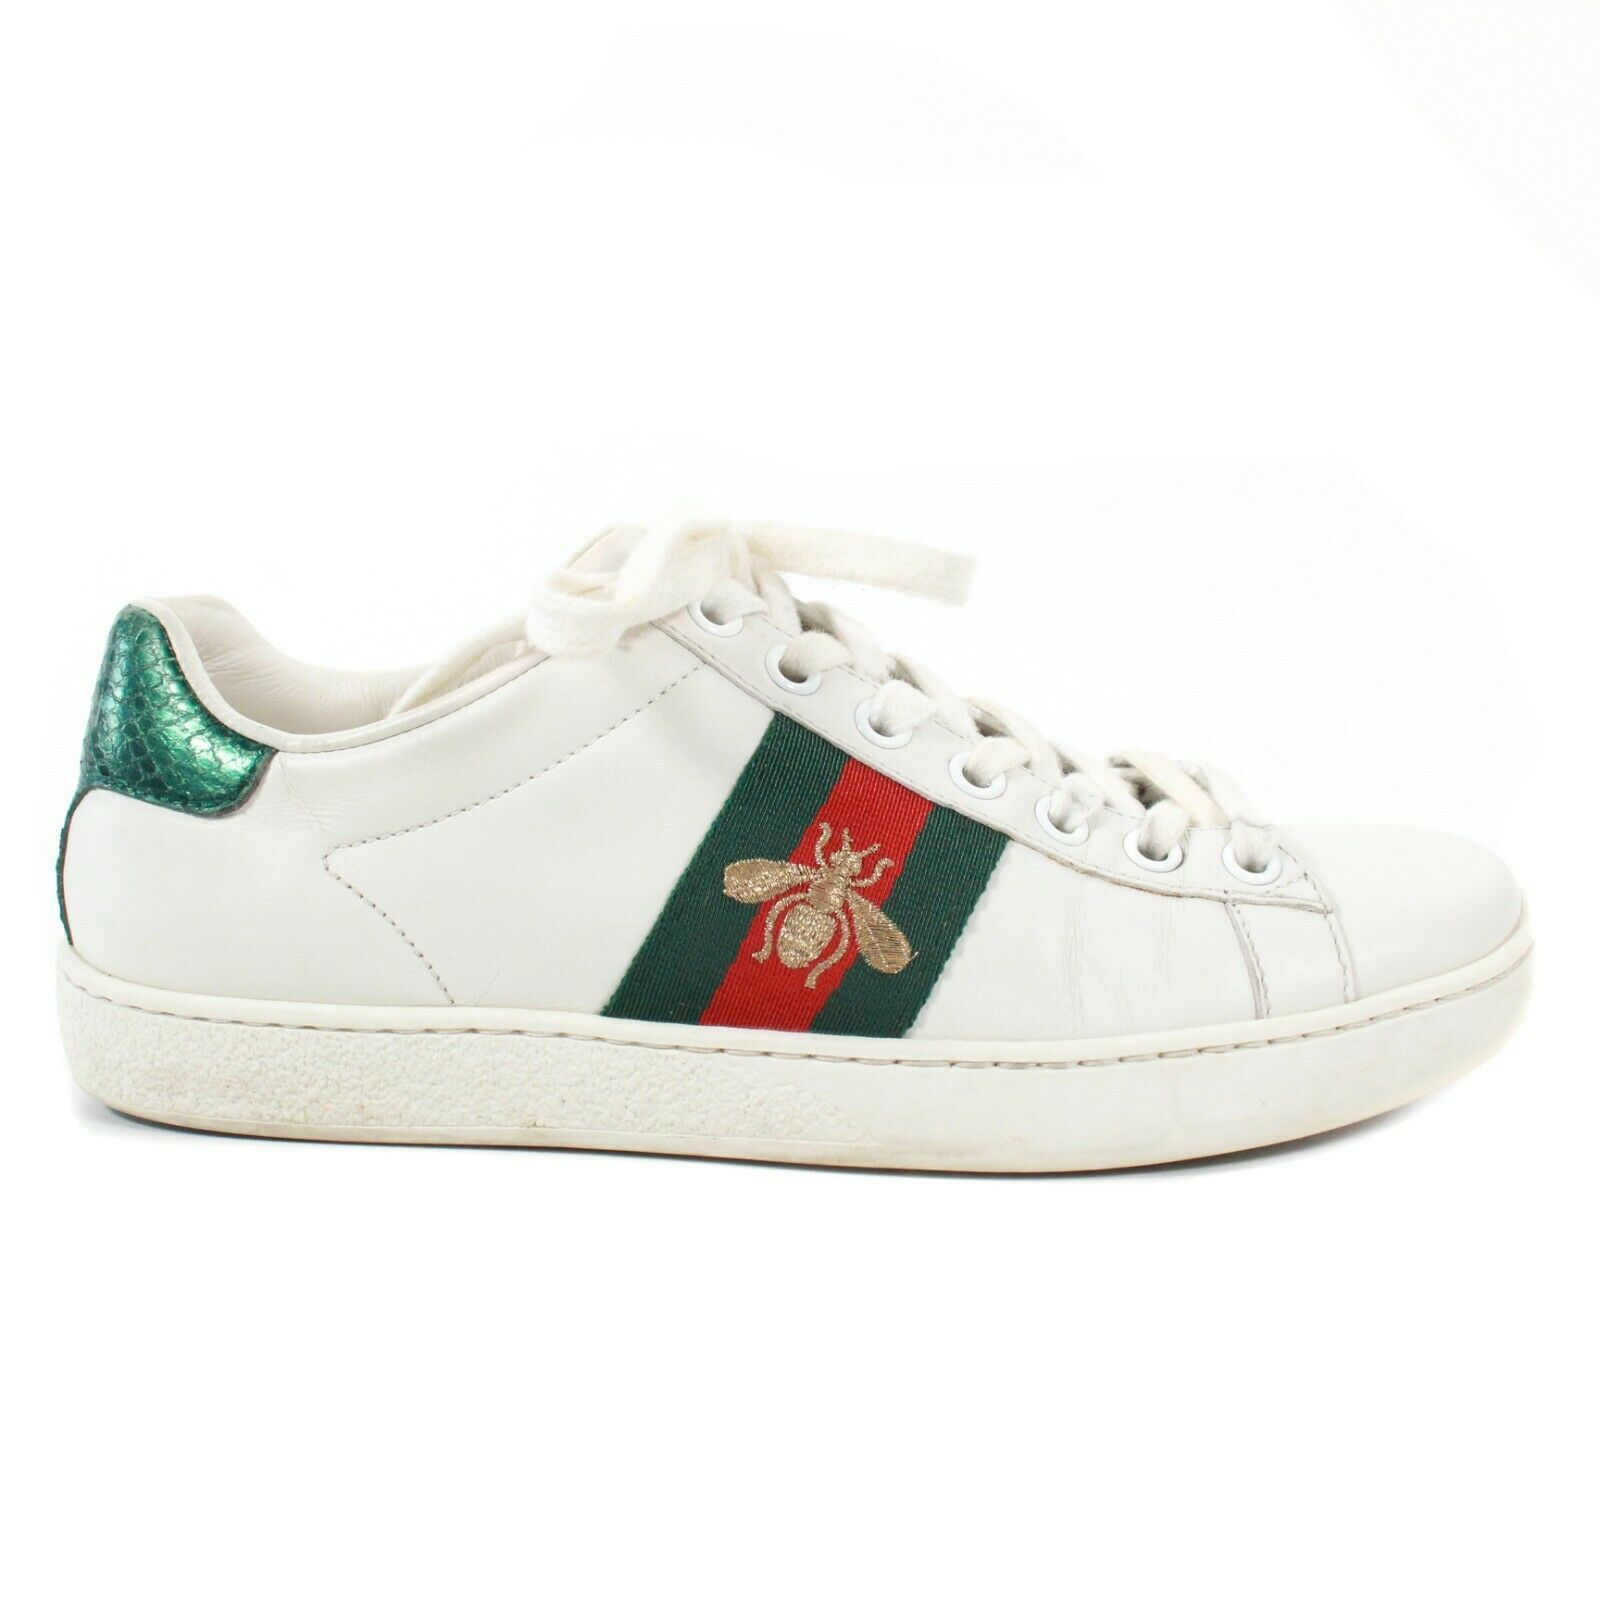 Gucci - Ace White Leather Sneakers